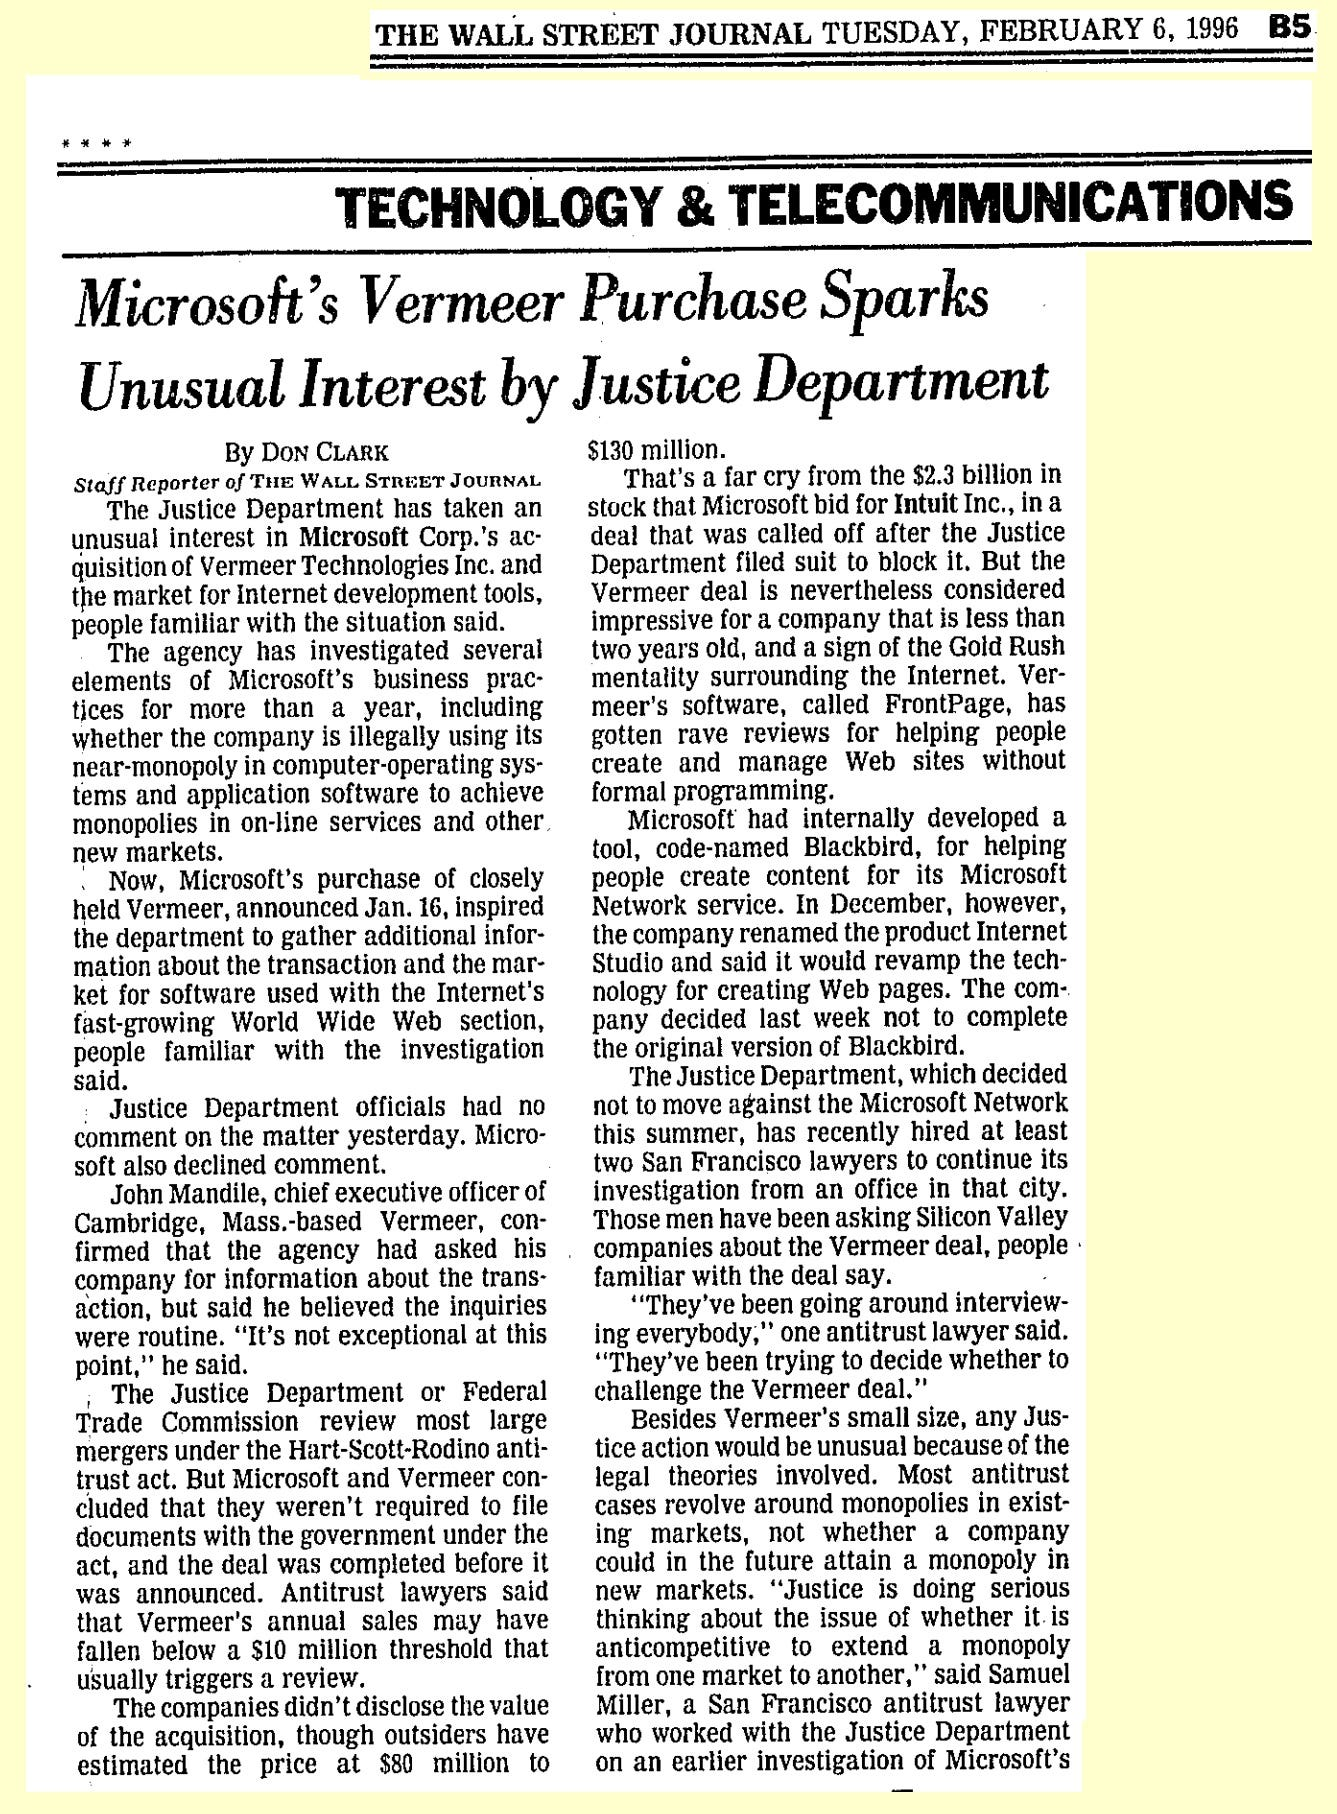 Microsoft's Vermeer Purchase Sparks Unusual Interest by Justice Department